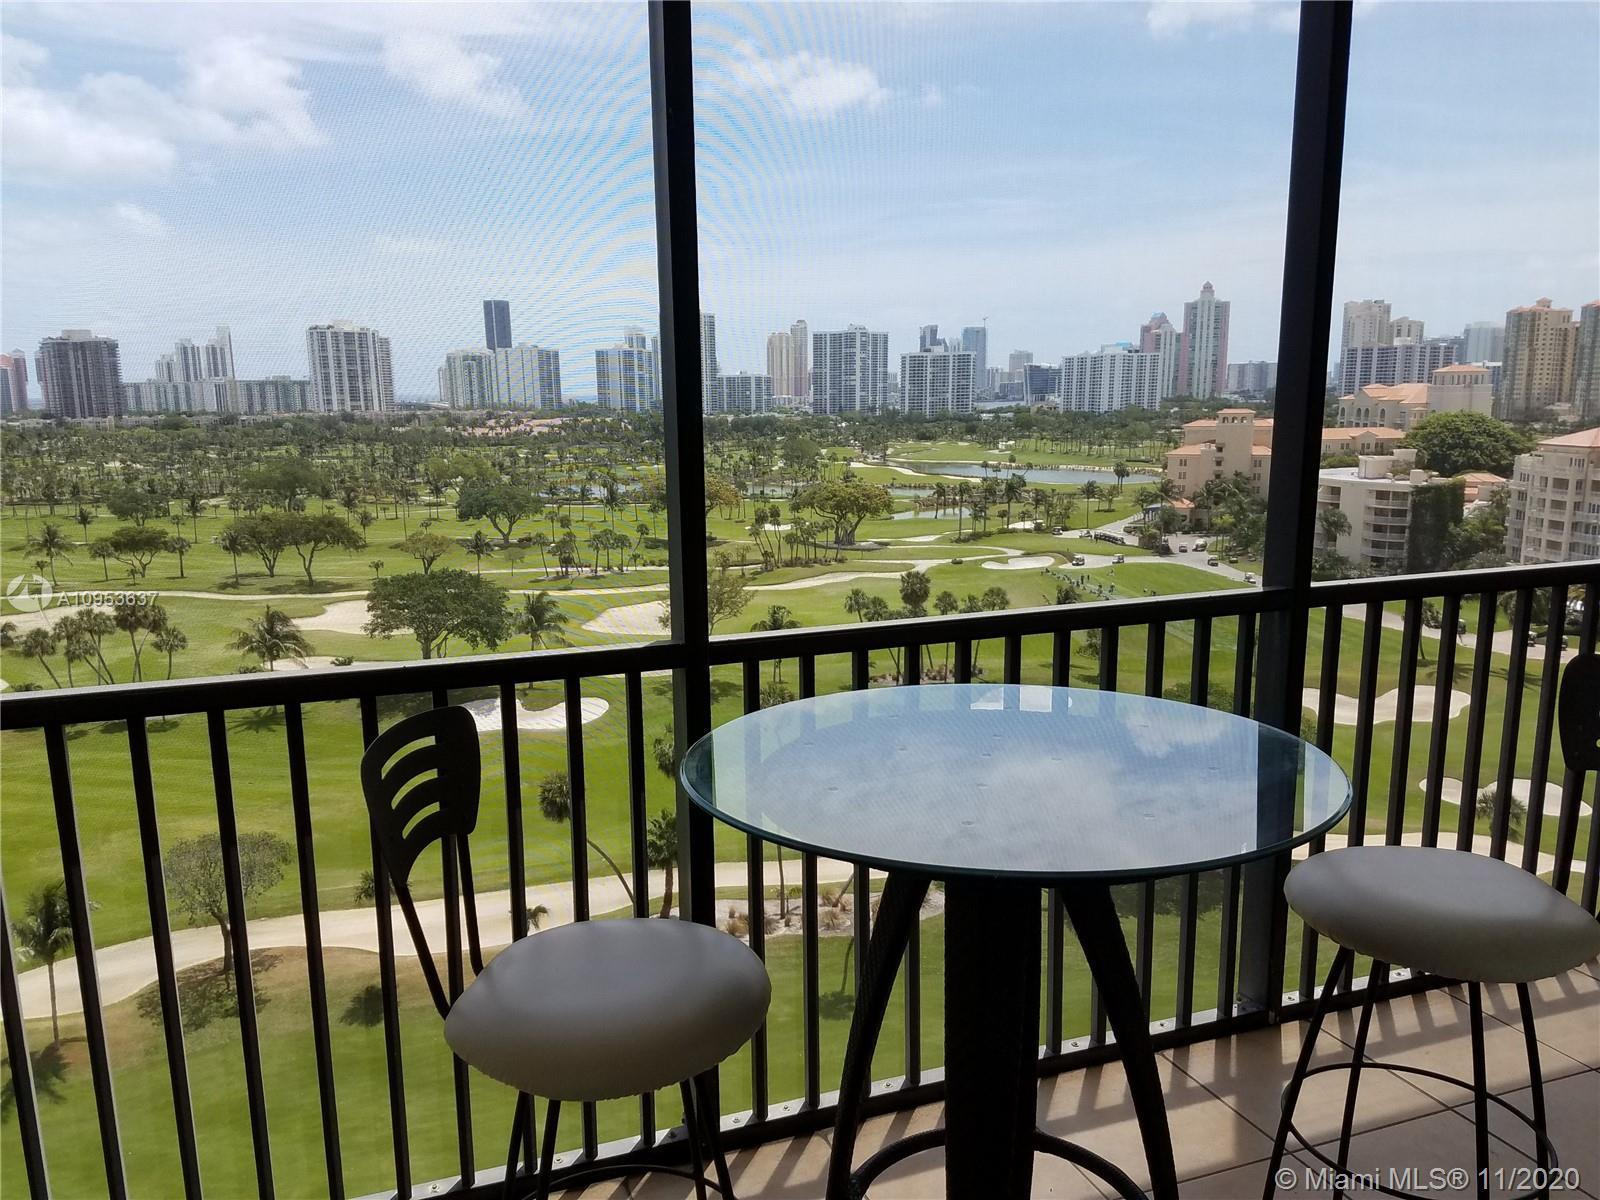 COME SEE THIS ABSOLUTLEY STUNNING 2 BEDROOM 2 BATH CONDO IN AVENTURA FOR SALE. COMPLETELY REMODELED